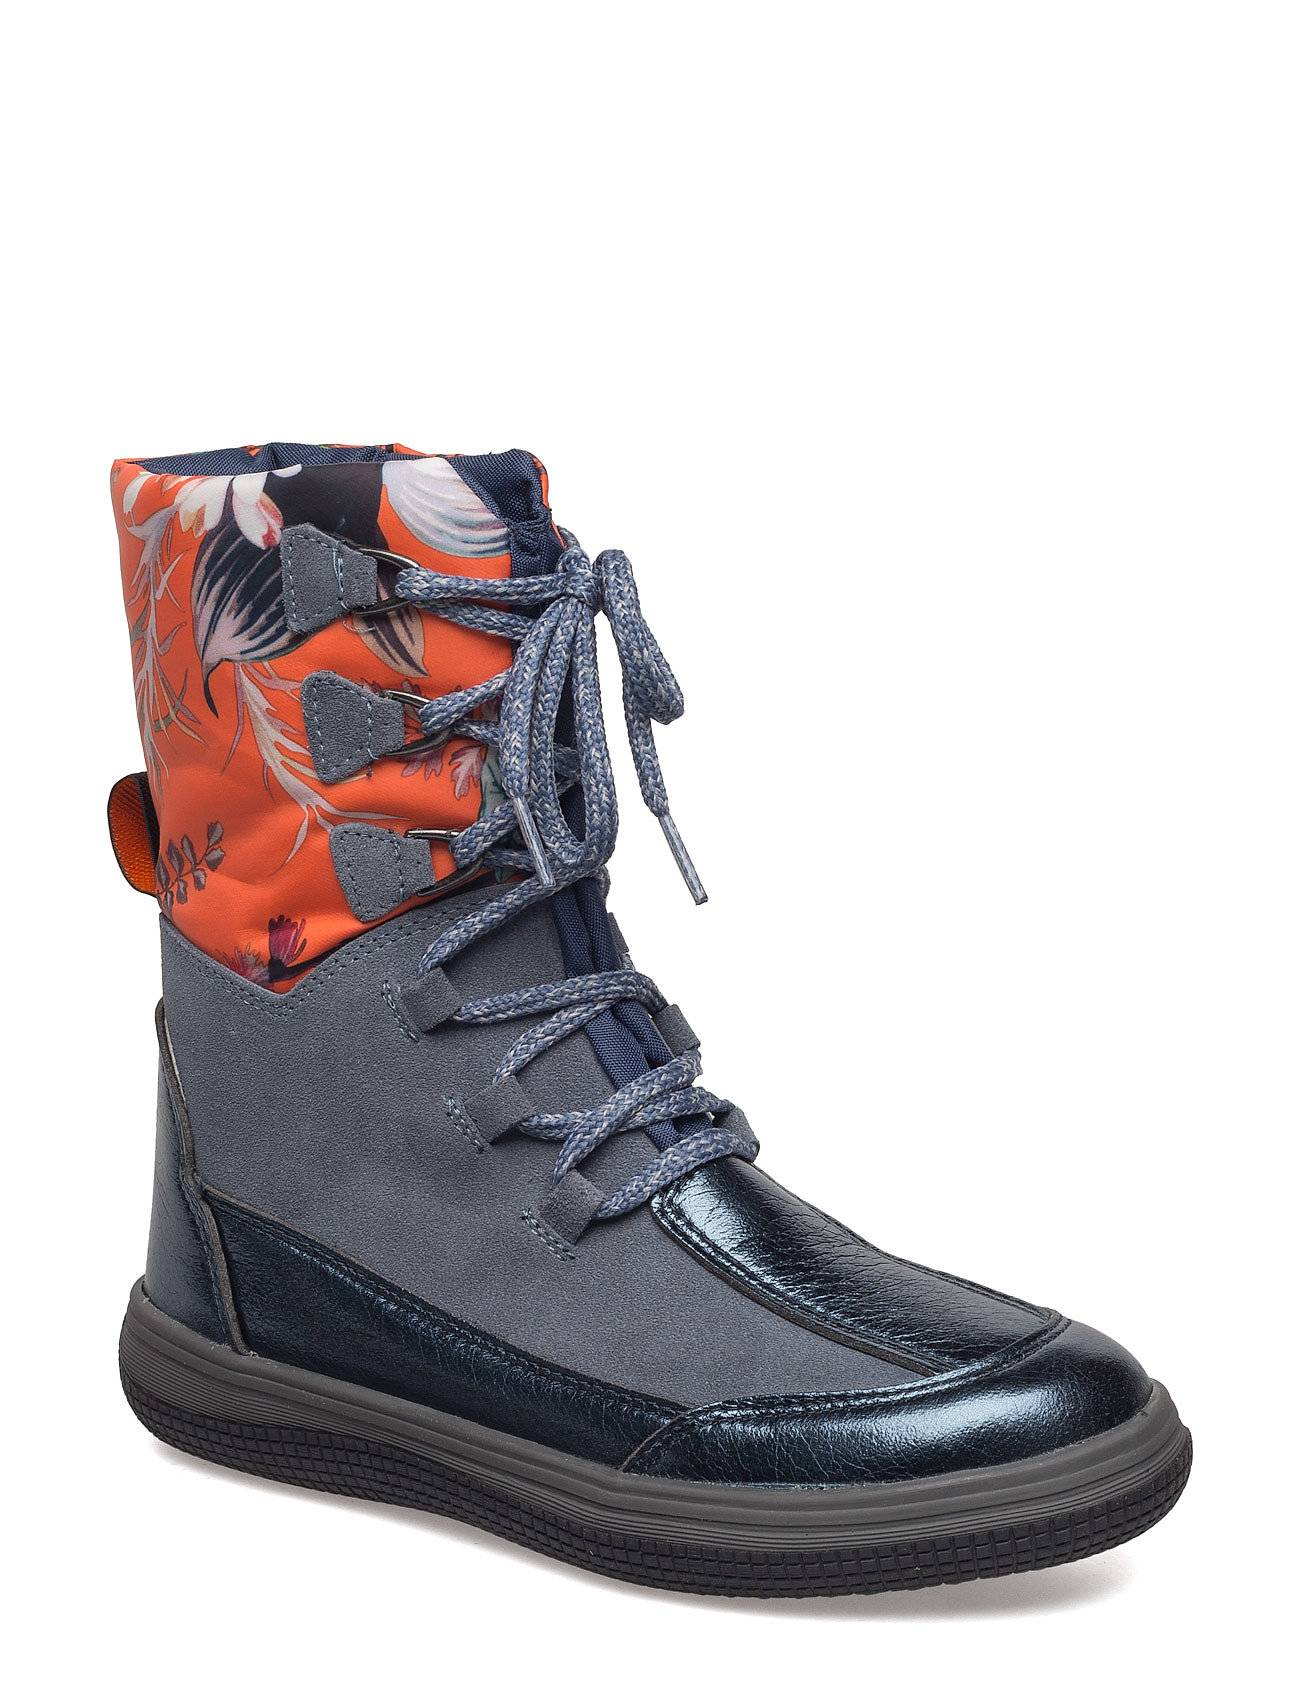 Ilse Jacobsen Warm Boot